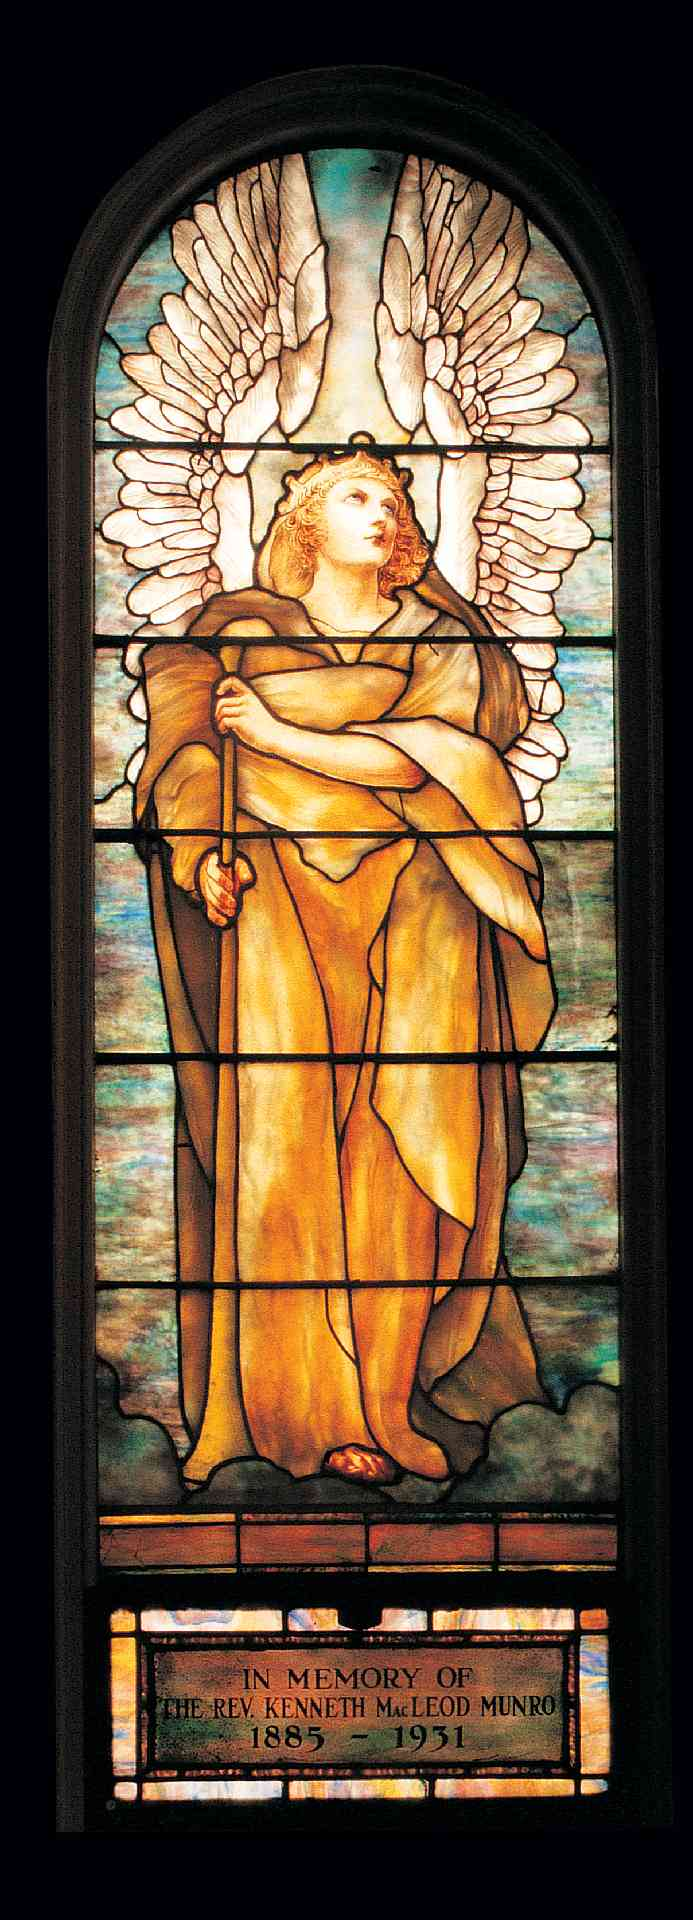 Tiffany Studios, New York Angel of the Resurrection, leaded-glass window, about 193, after a 1904 cartoon by Frederick Wilson The Erskine and American Church